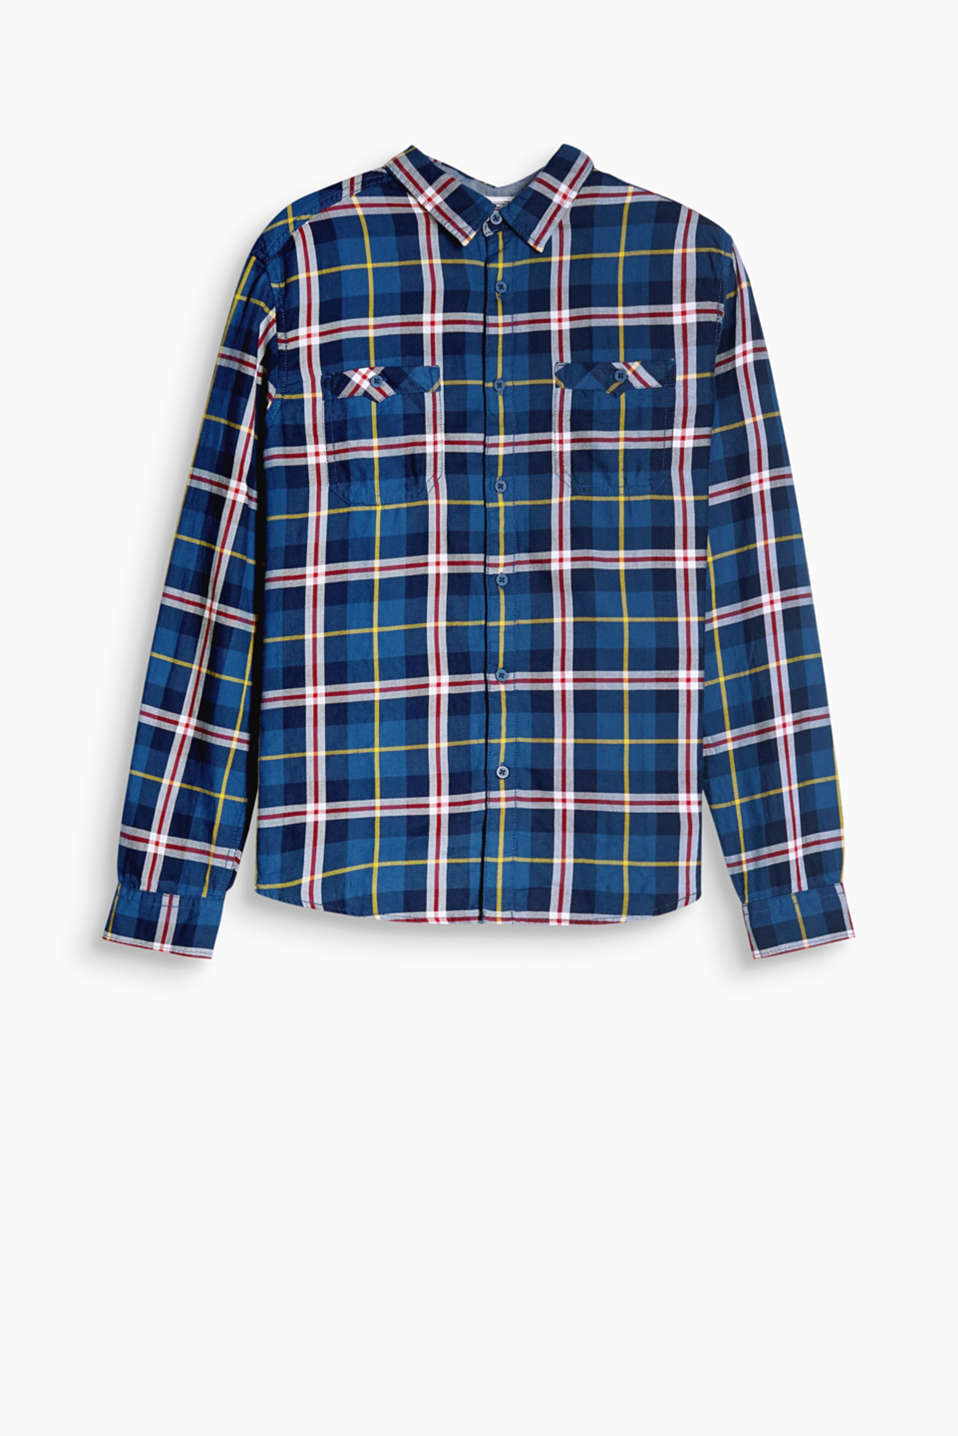 Shirt with a large Prince of Wales check pattern with a button-down breast pockets and a narrow collar